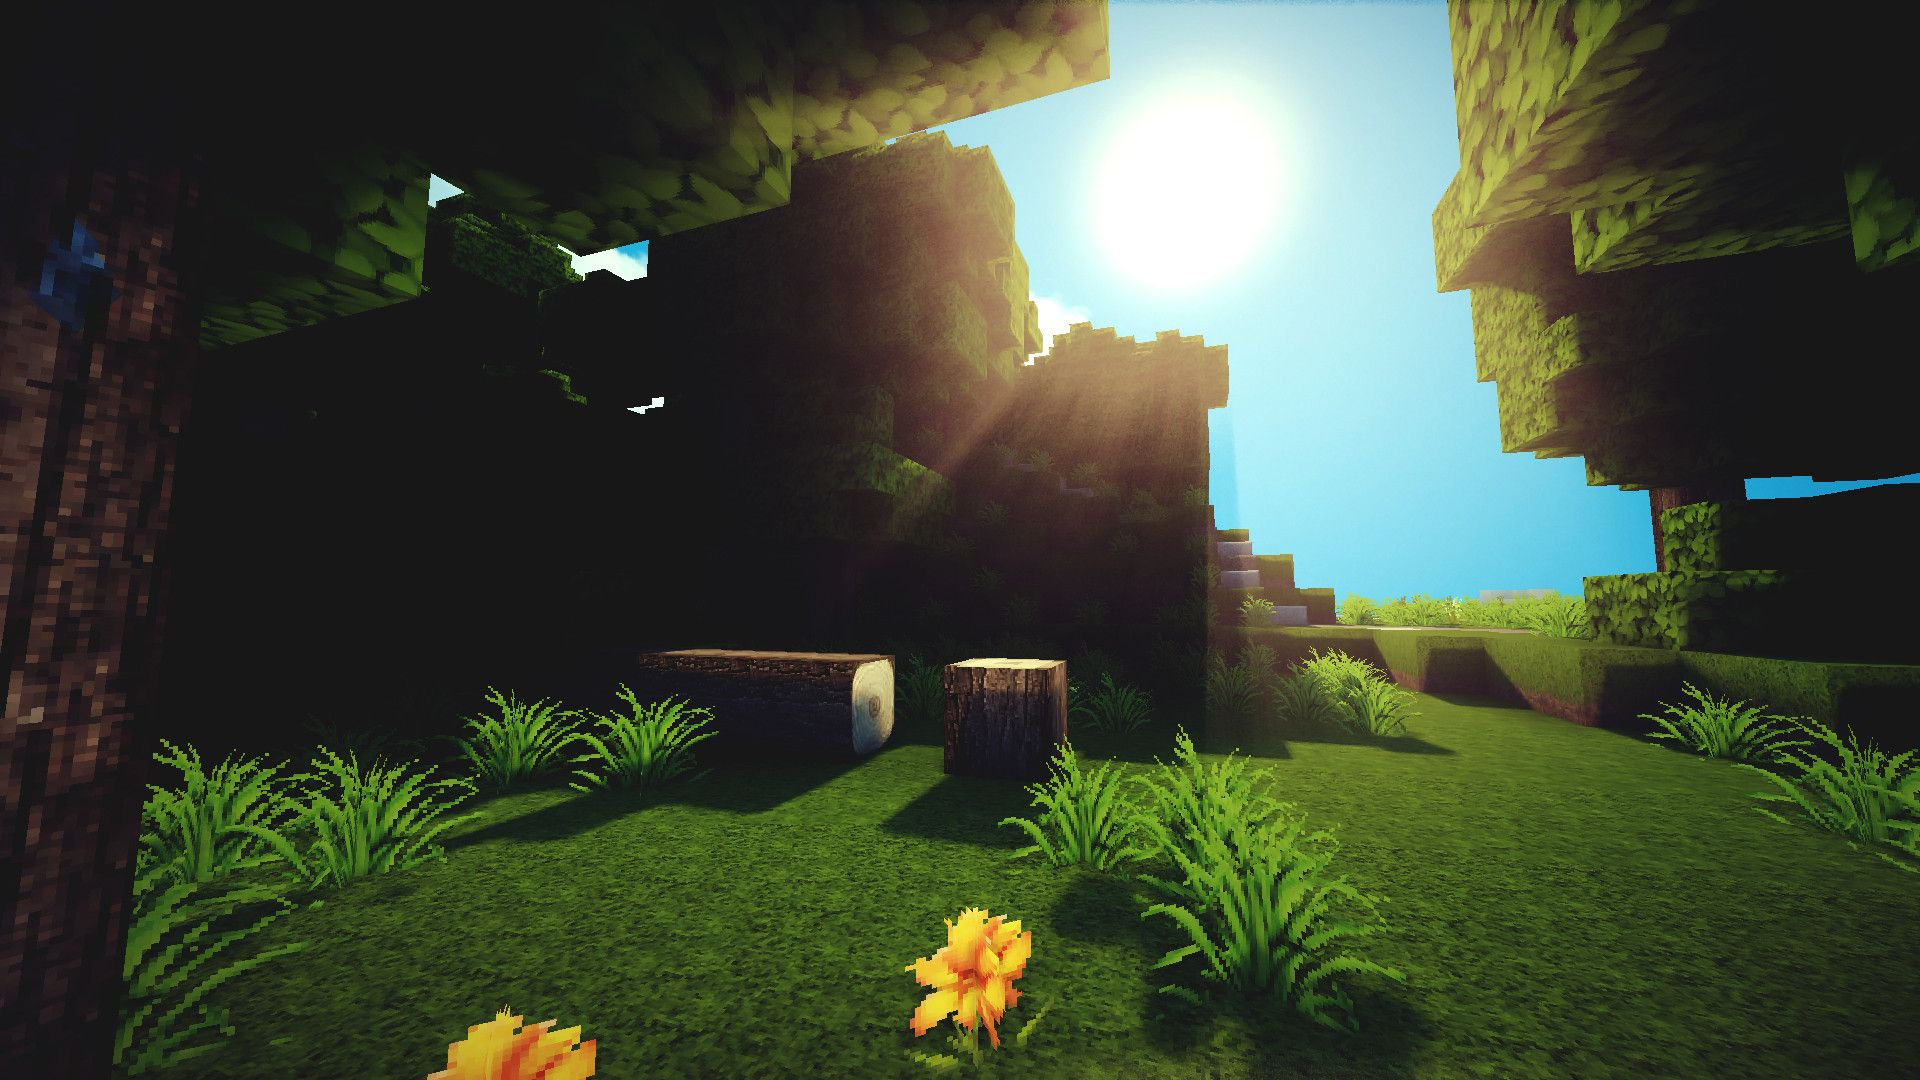 Minecraft Backgrounds For Your Computer 1920x1080